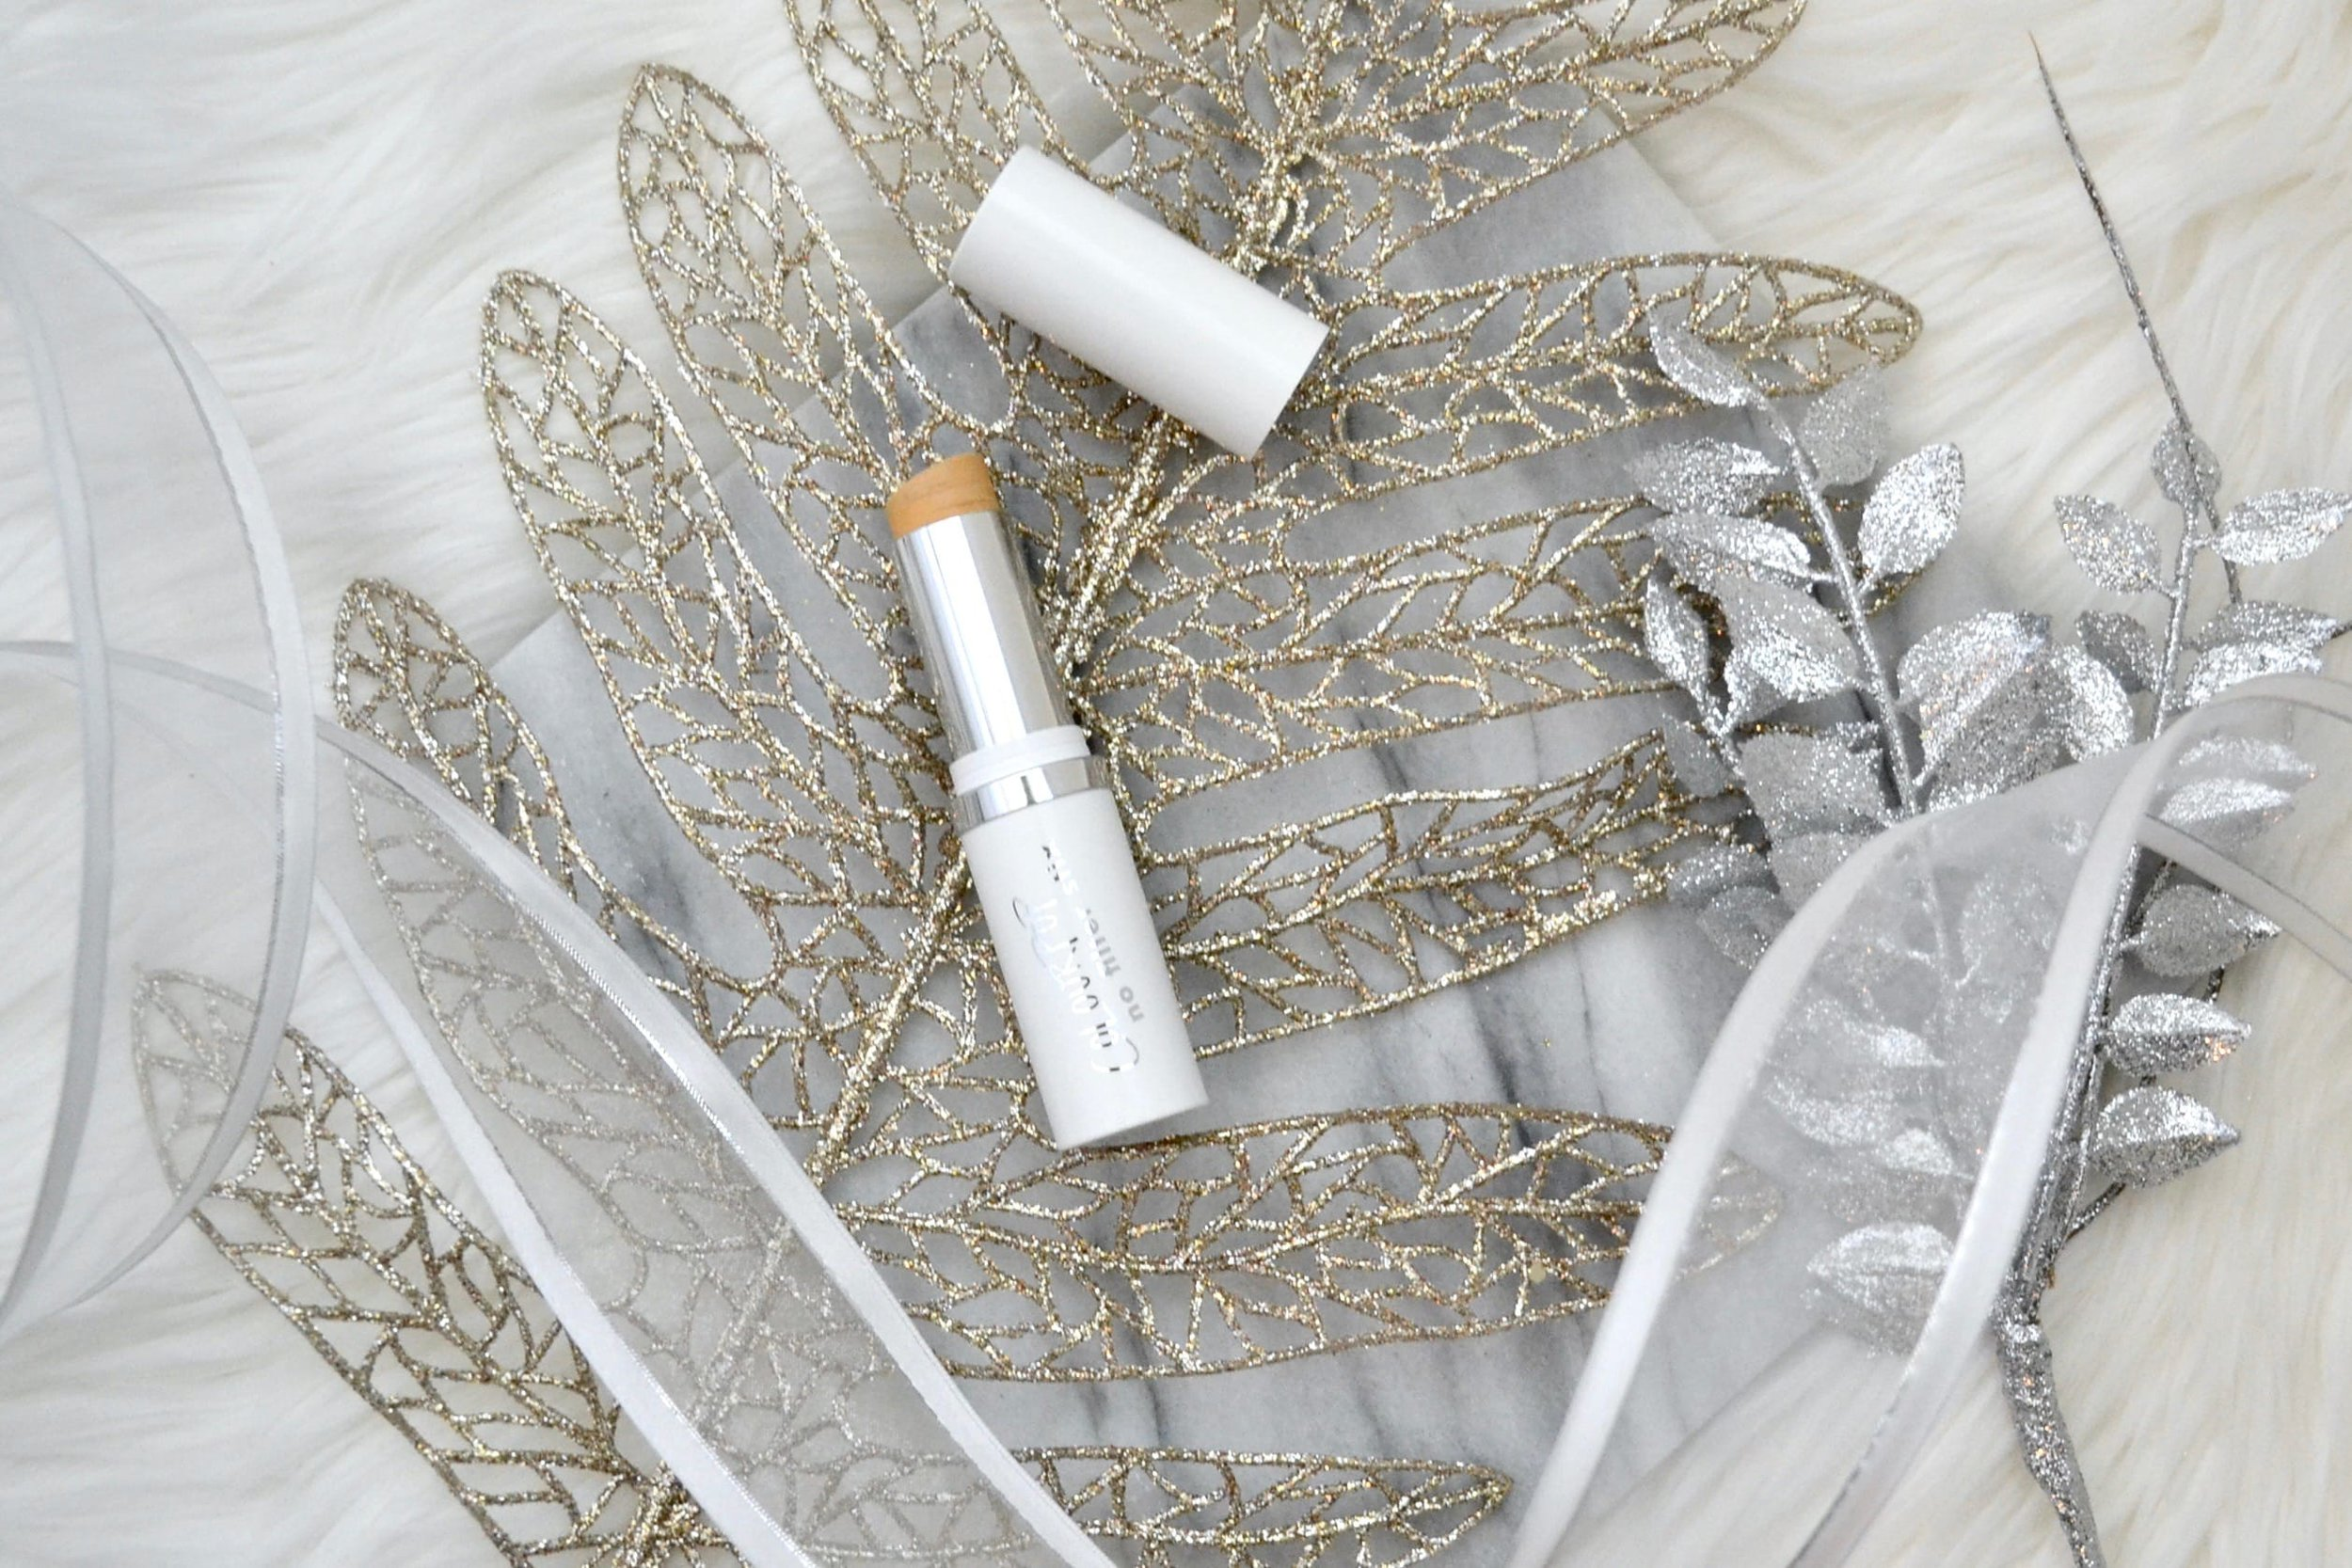 Have you tried the new ColourPop No Filter Stix Foundation yet? I give you all the details on this affordable foundation in my in-depth review! #colourpop #foundation #review #affordablemakeup #makeup